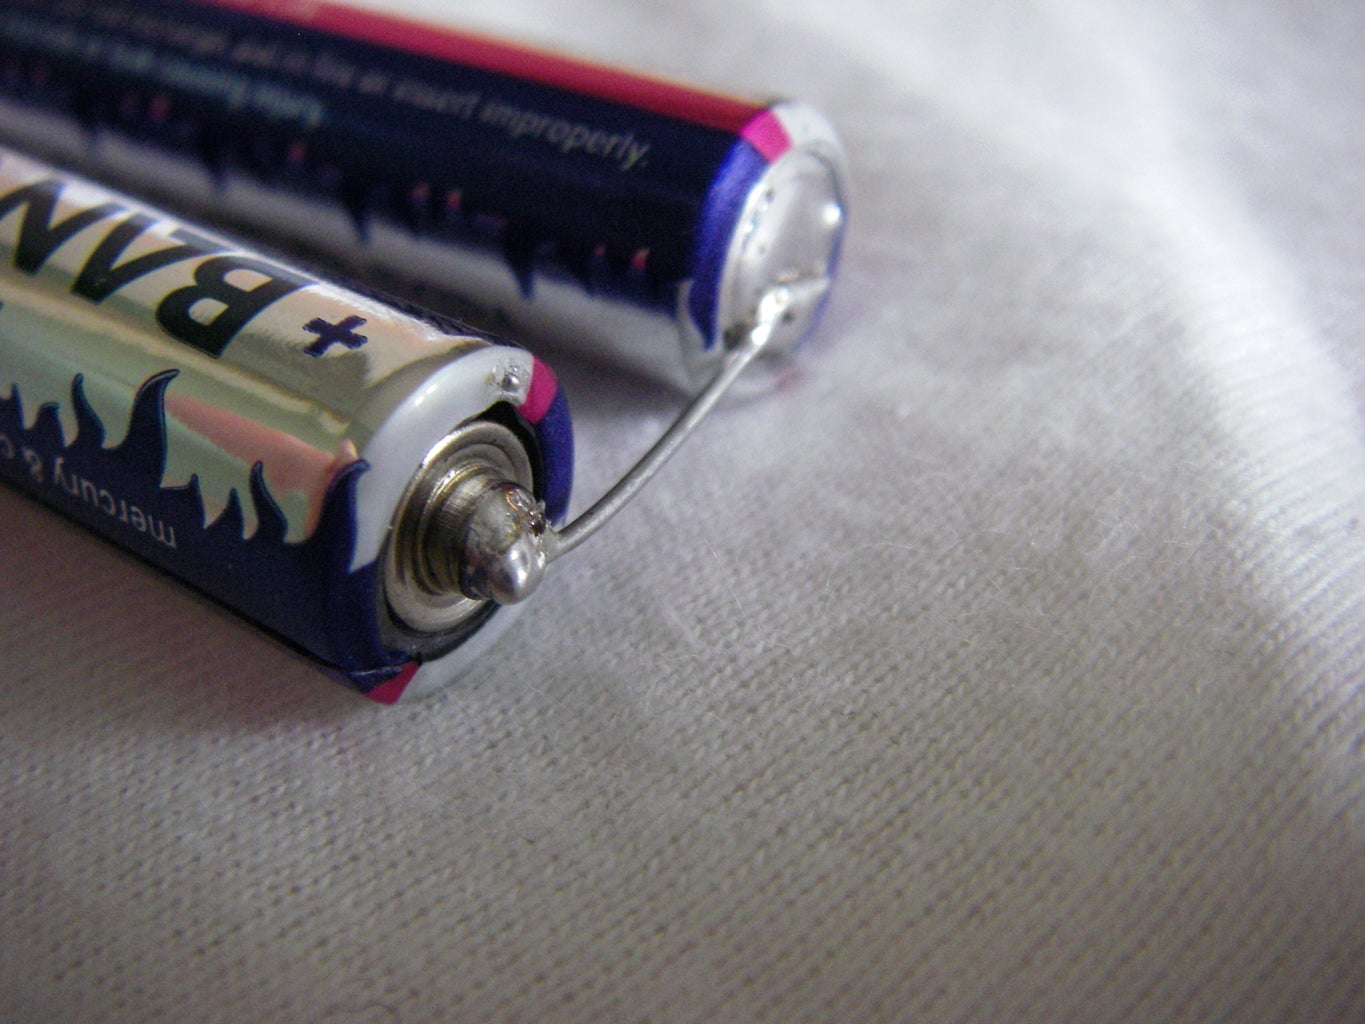 Mount the Batteries and the Switch